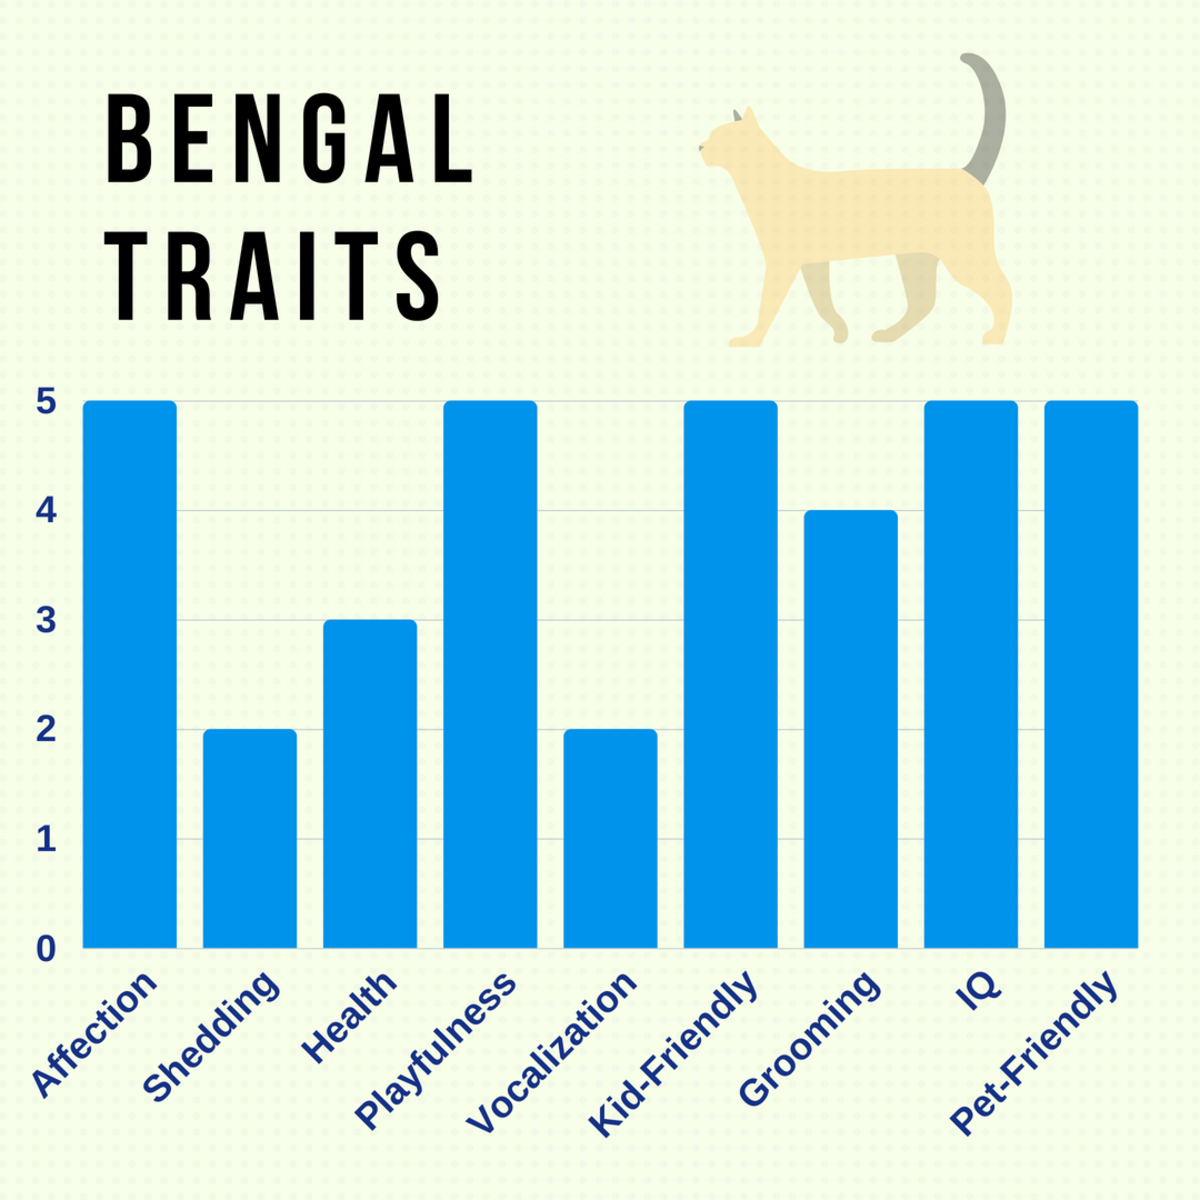 Adapted from CatTime.com. Trait rating is from 1-5; 1 being lowest, and 5 being the highest probability.